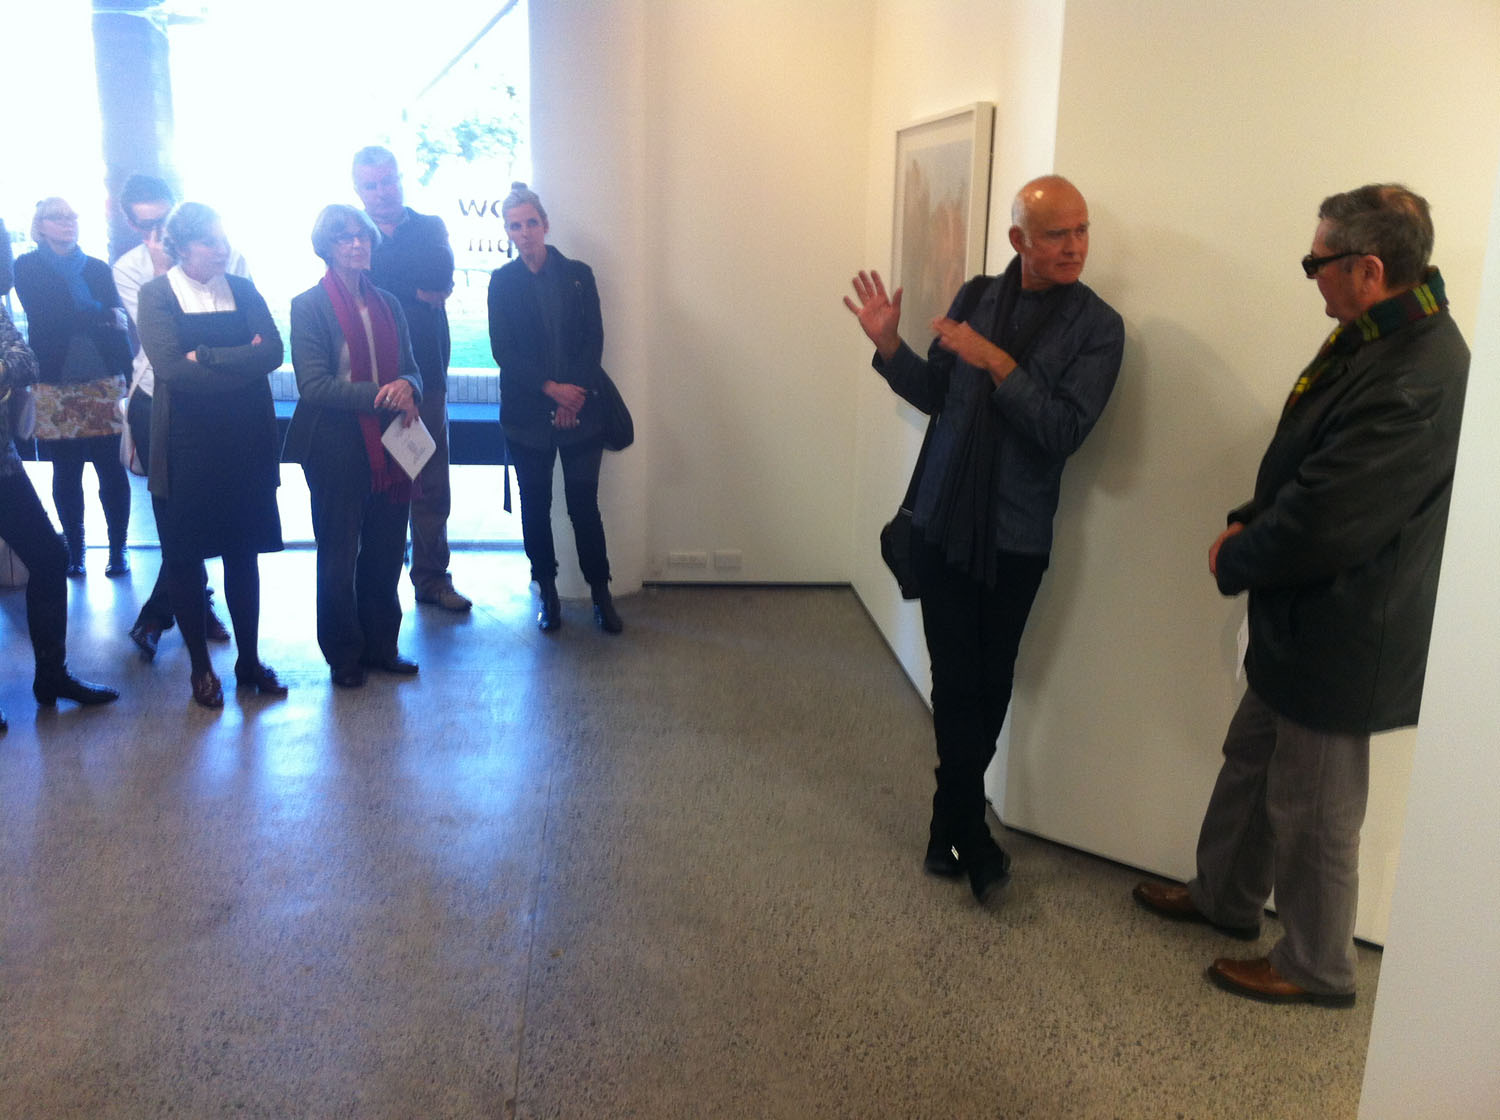 Bruce Connew discusses his work with Ron Brownson